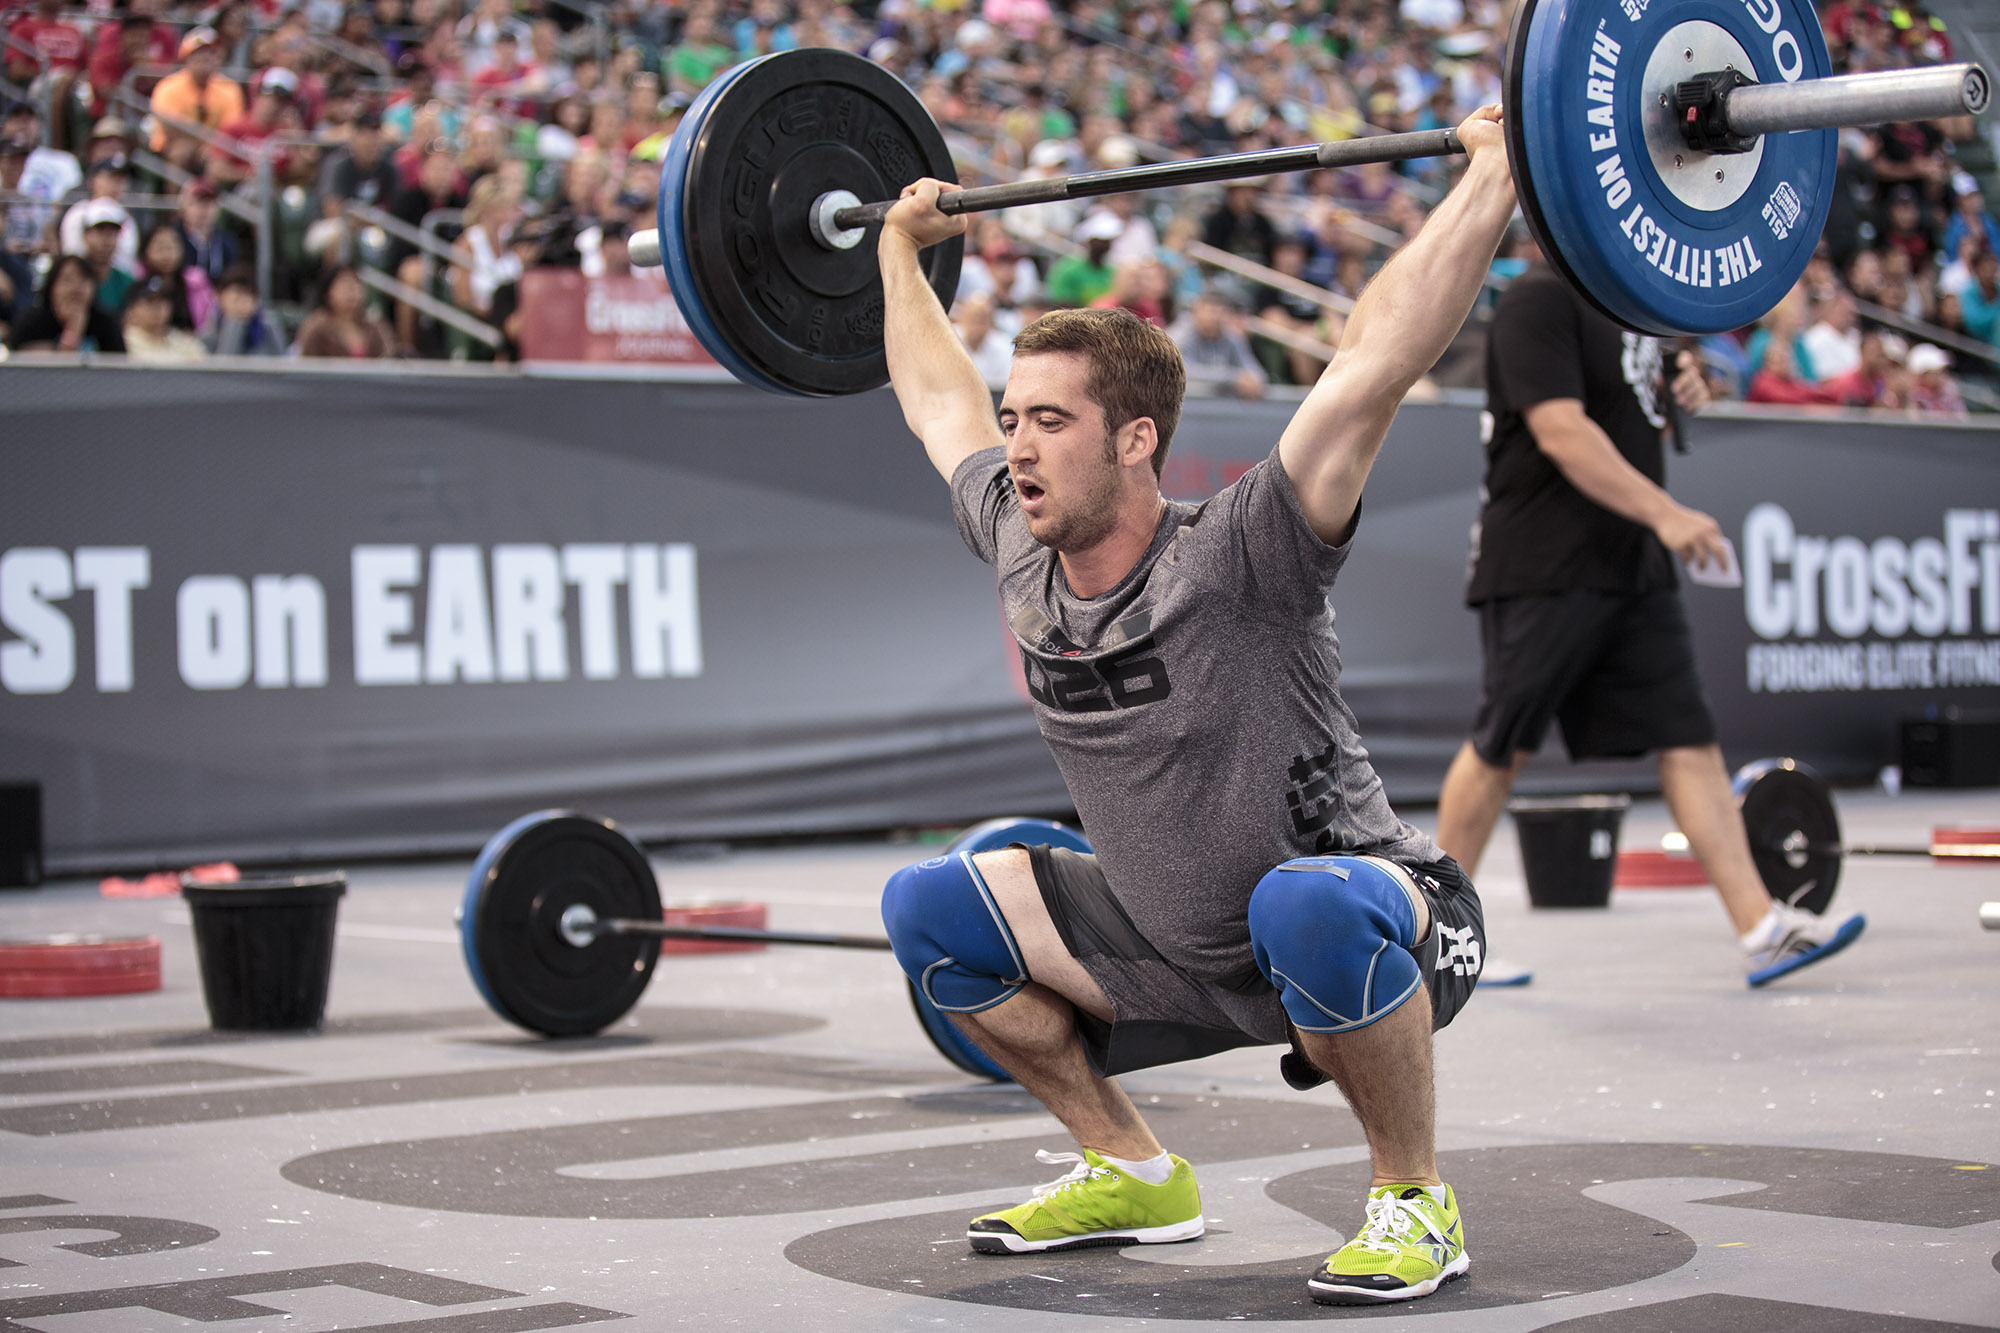 Ben Smith is the 2015 Fittest Man on Earth, he has been to the CrossFit games 7 times and he definitely deserves the title.